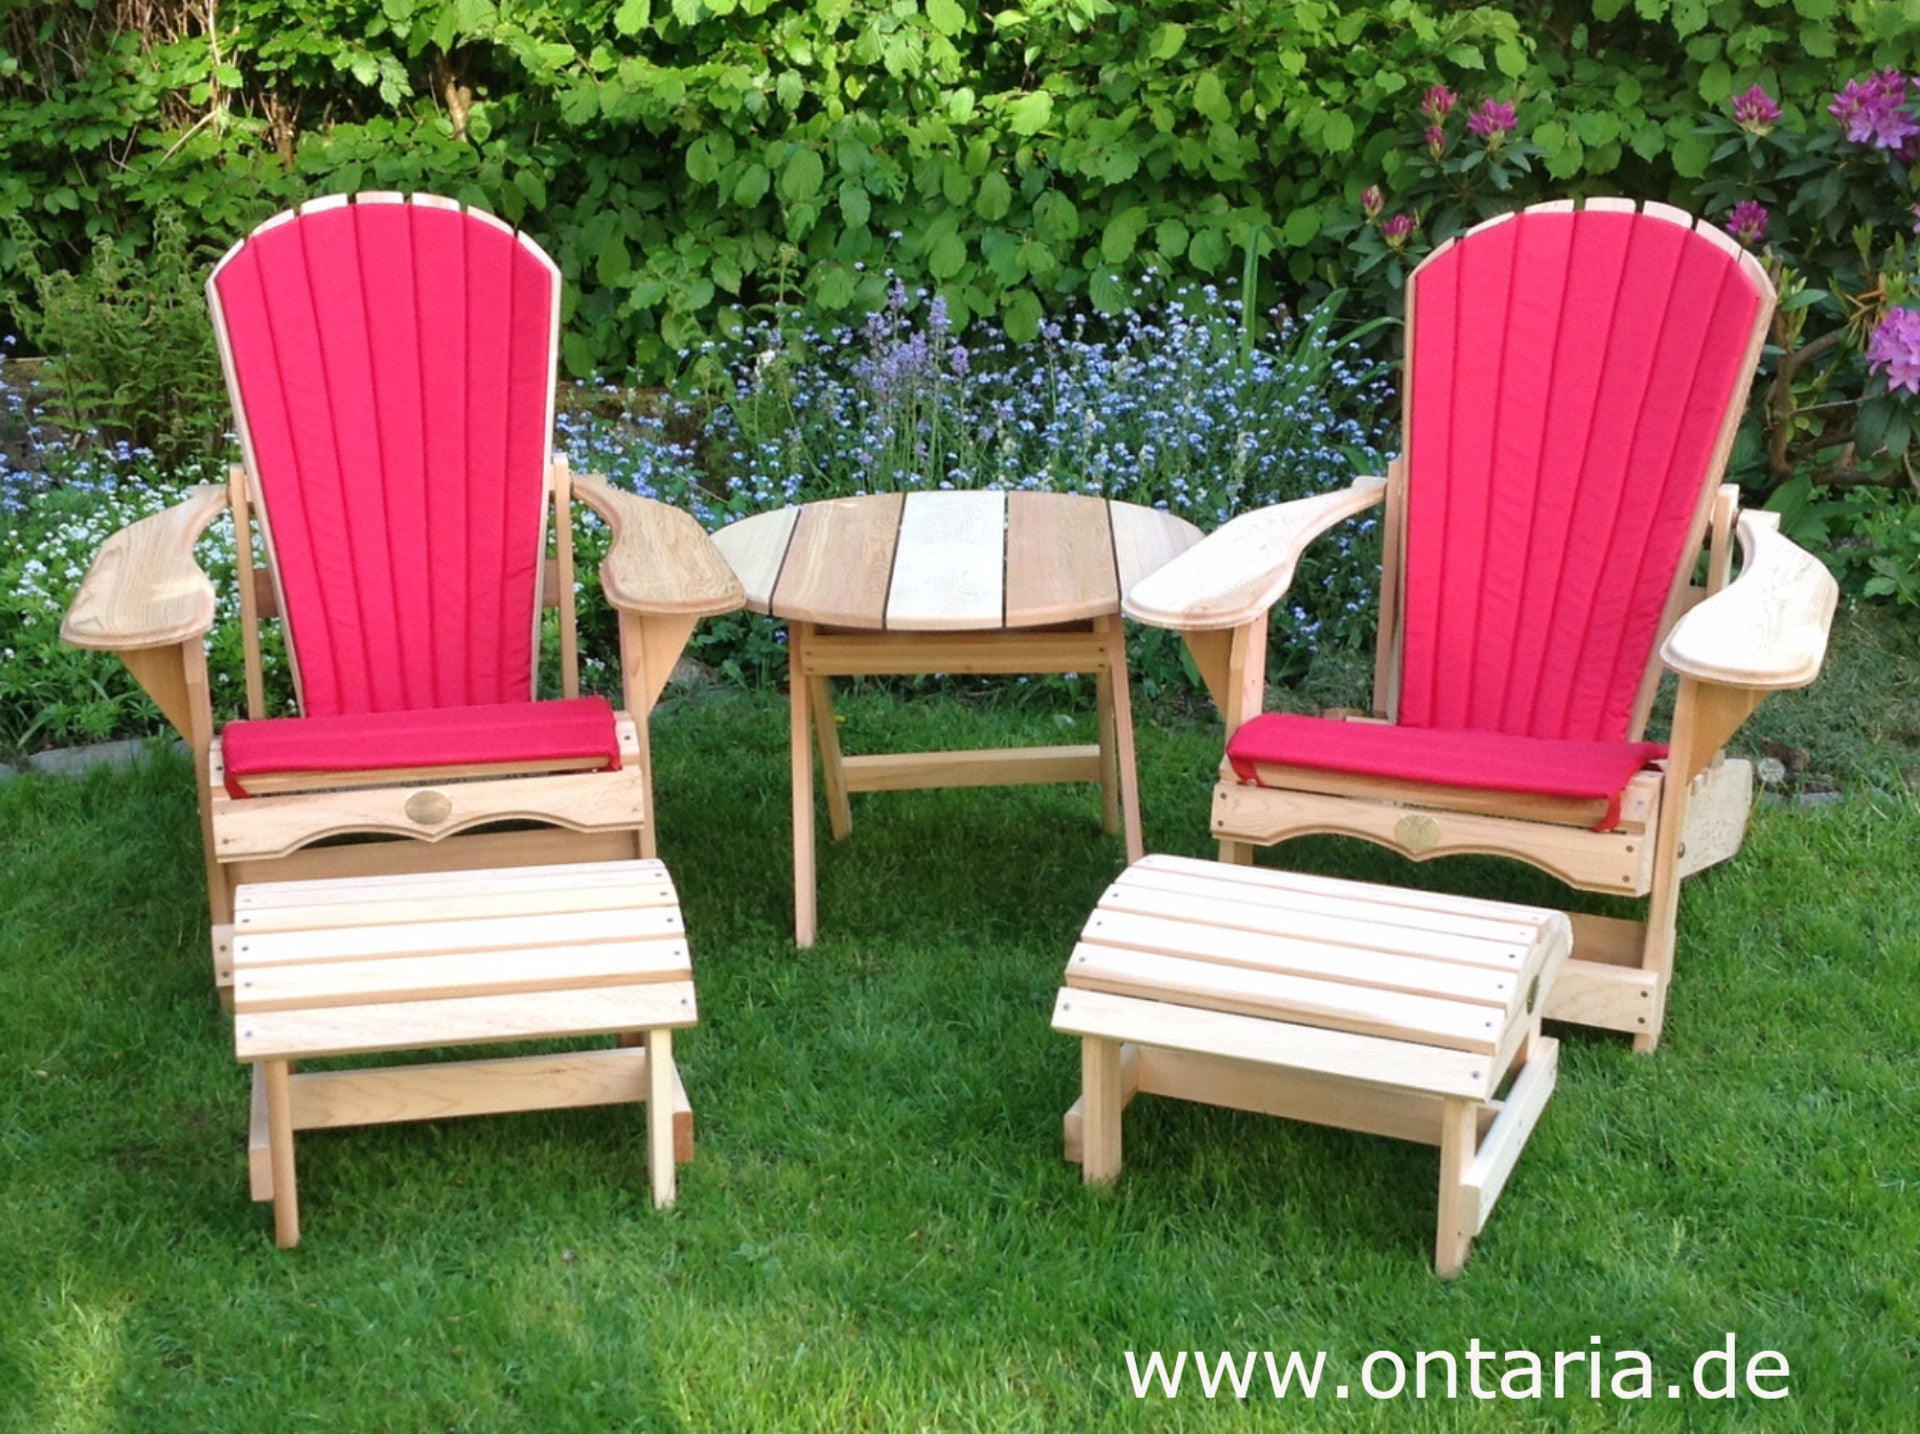 Adirondack Chair Folding Original Bear Chair ONTARIA EU